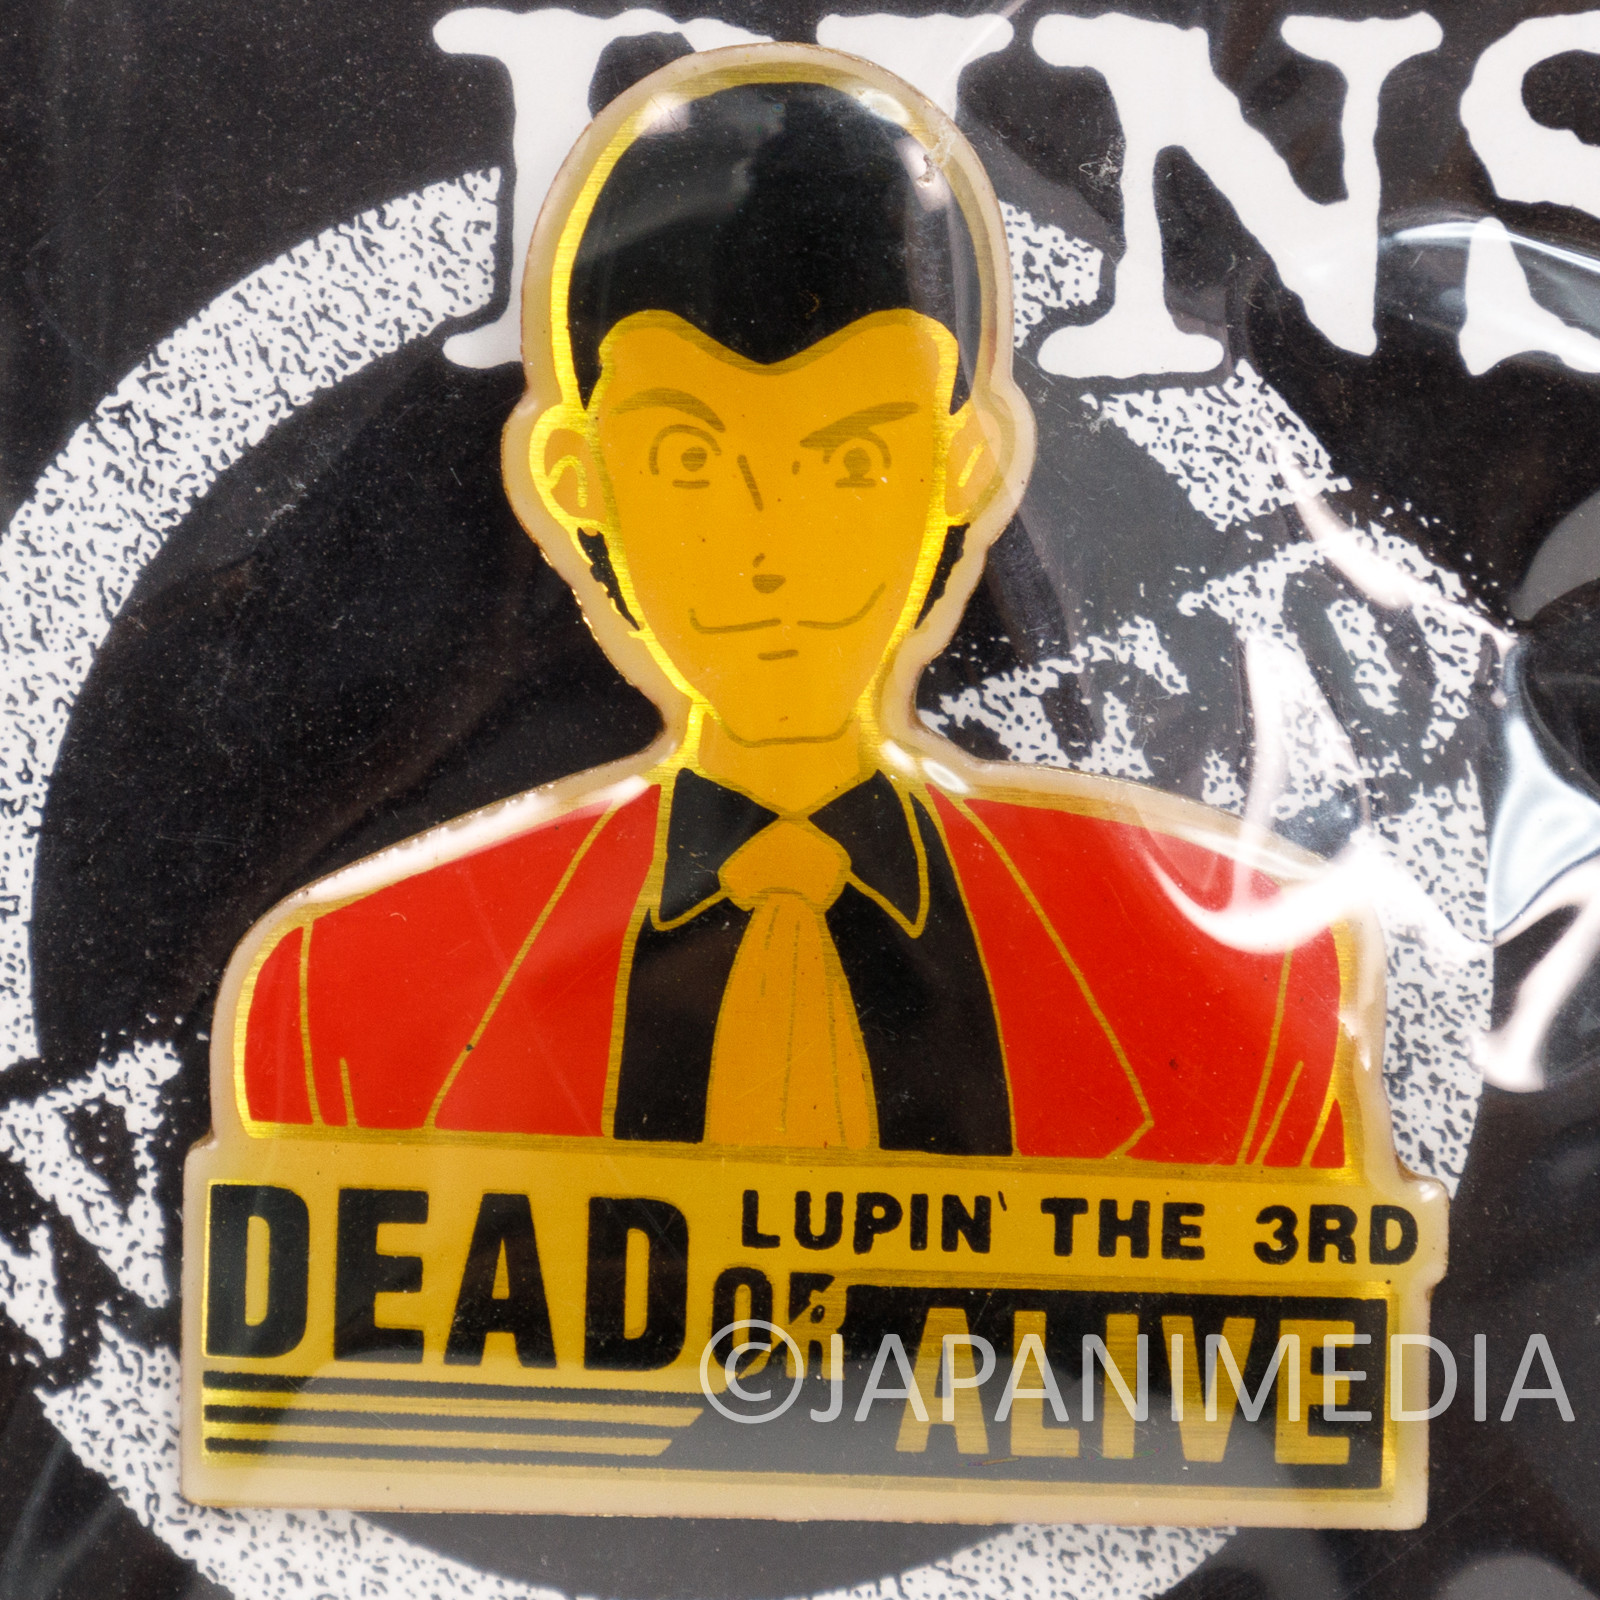 Lupin the Third (3rd) Dead or Alive Metal Pins JAPAN ANIME 1